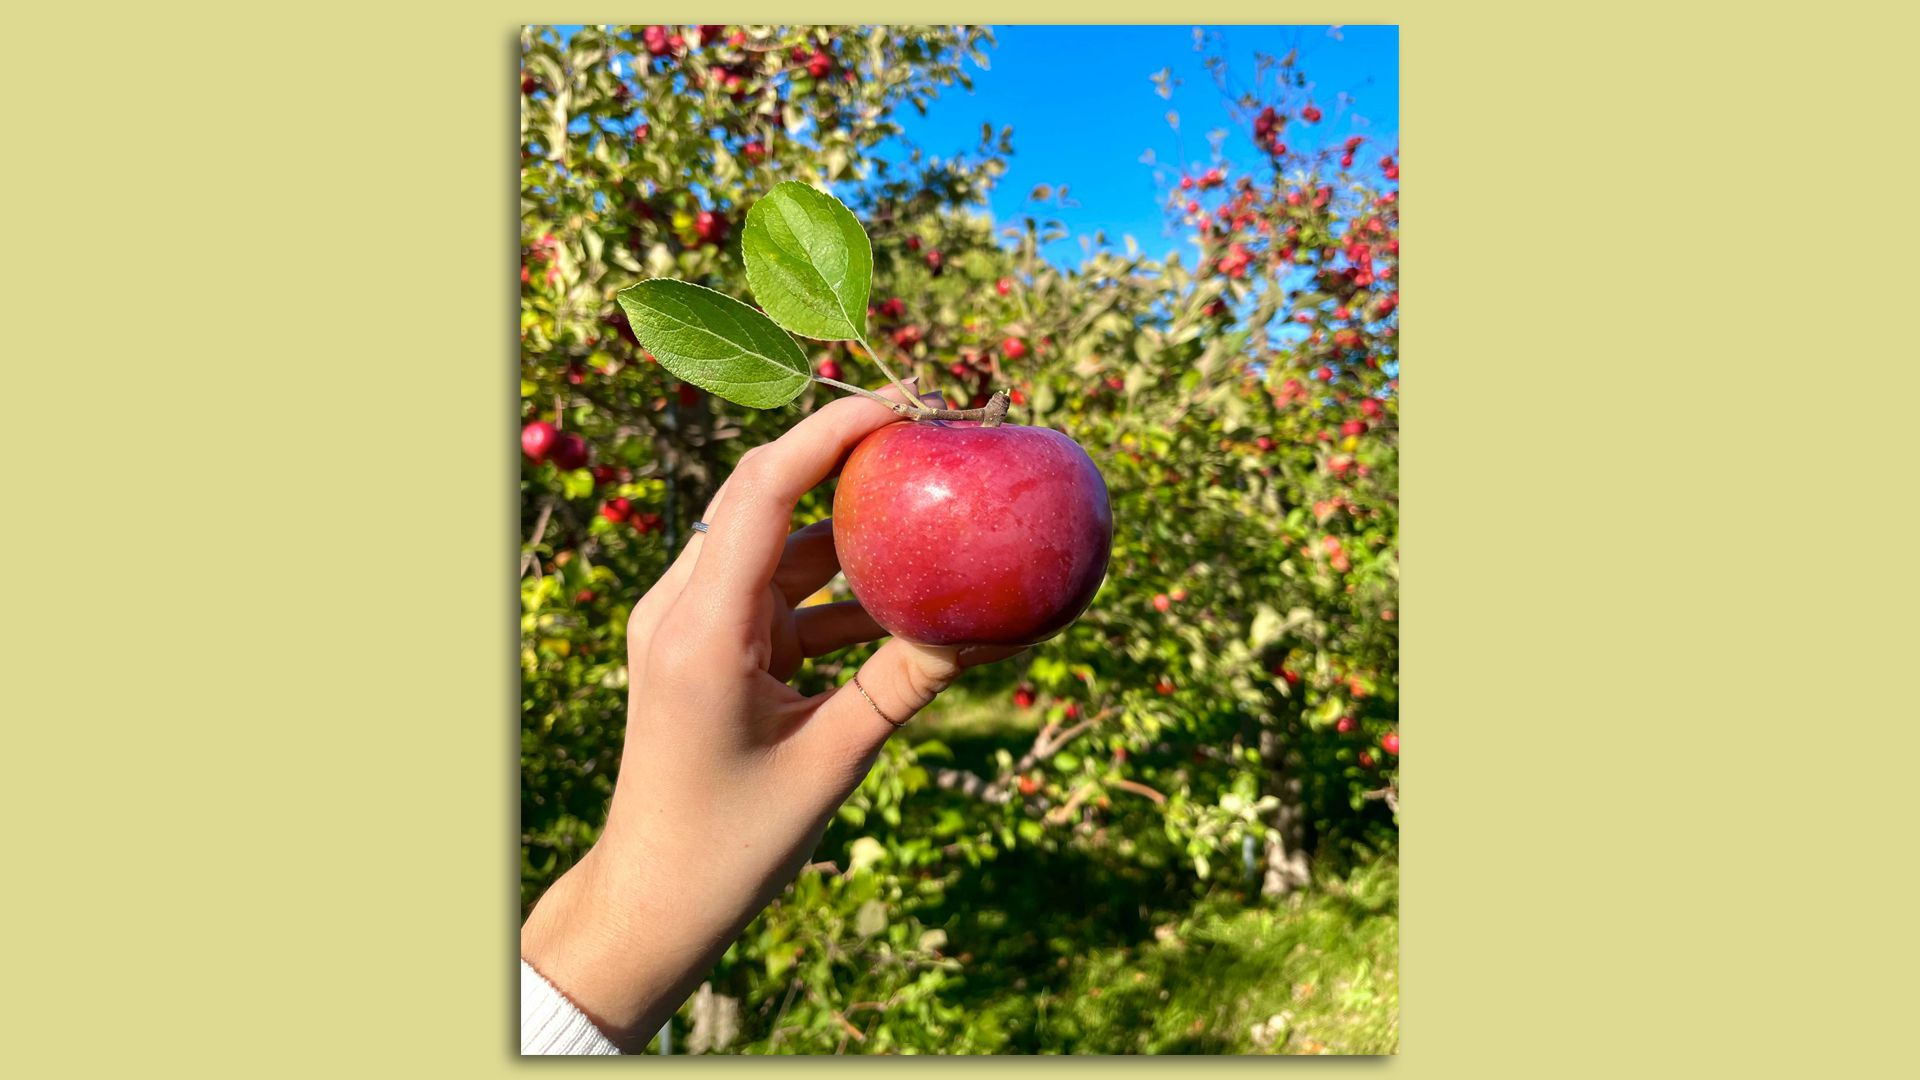 hand holding a red apple in front of a group of apple trees on sunny day